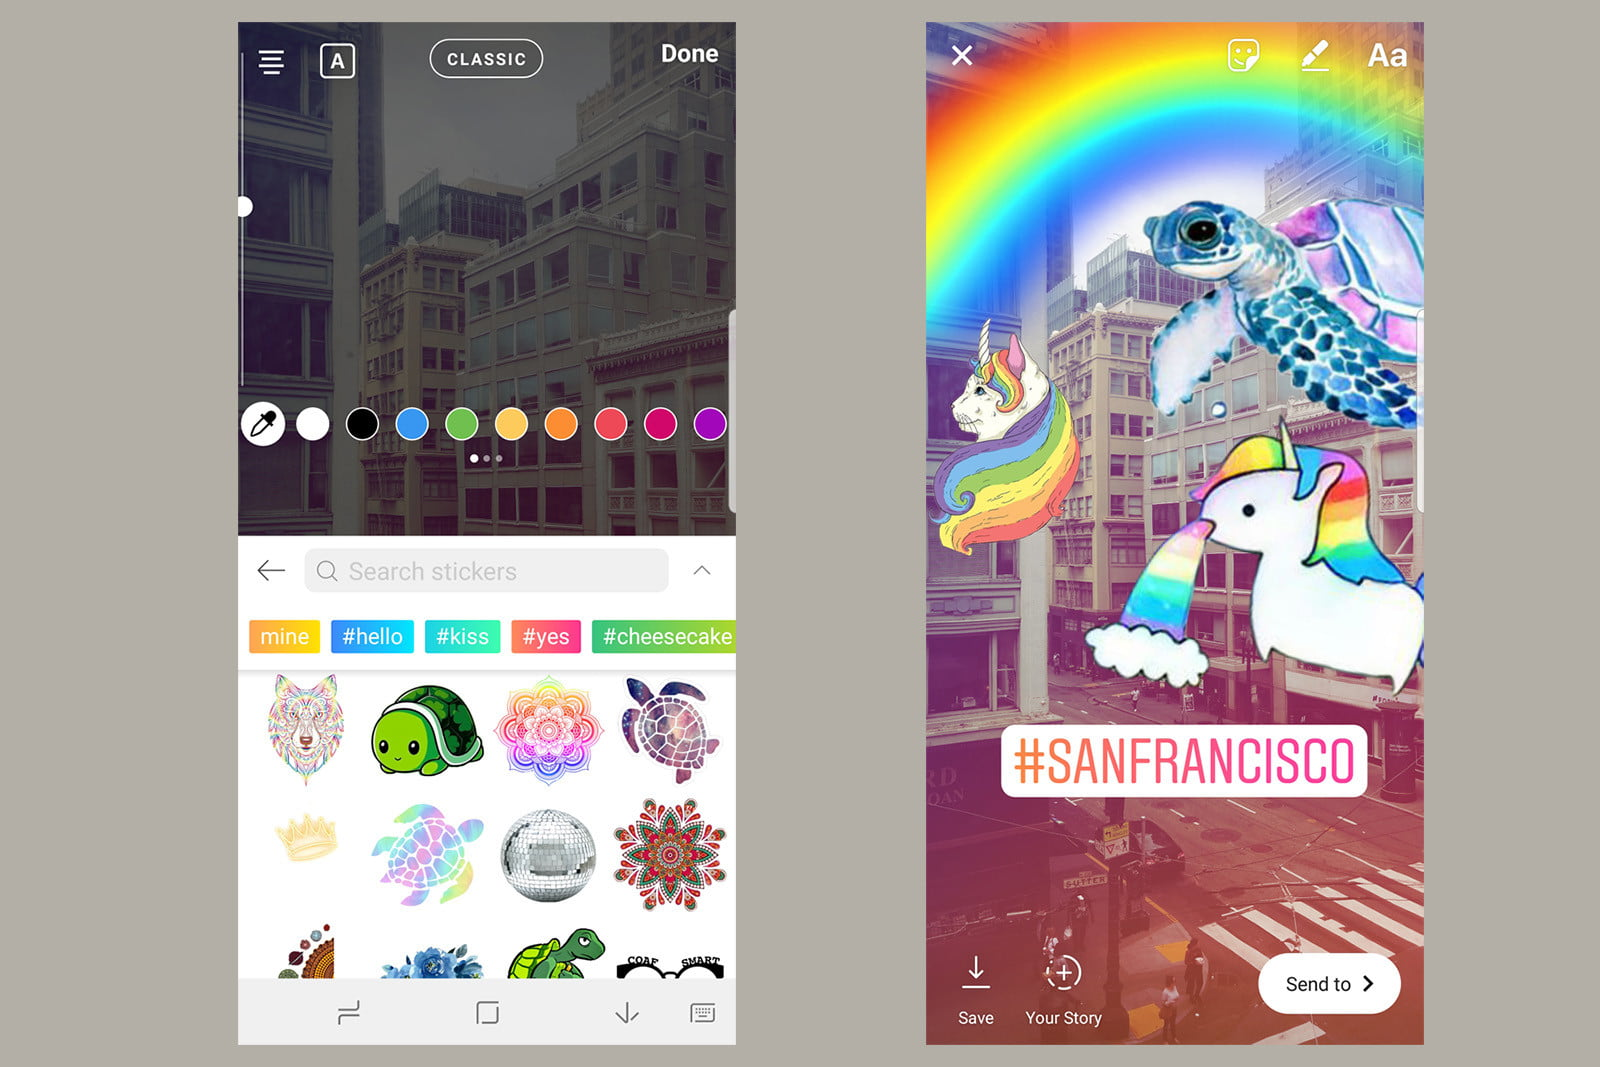 Picsarts custom stickers and the 5 million plus library of public stickers are now easier to access for android users with a new sticker keyboard